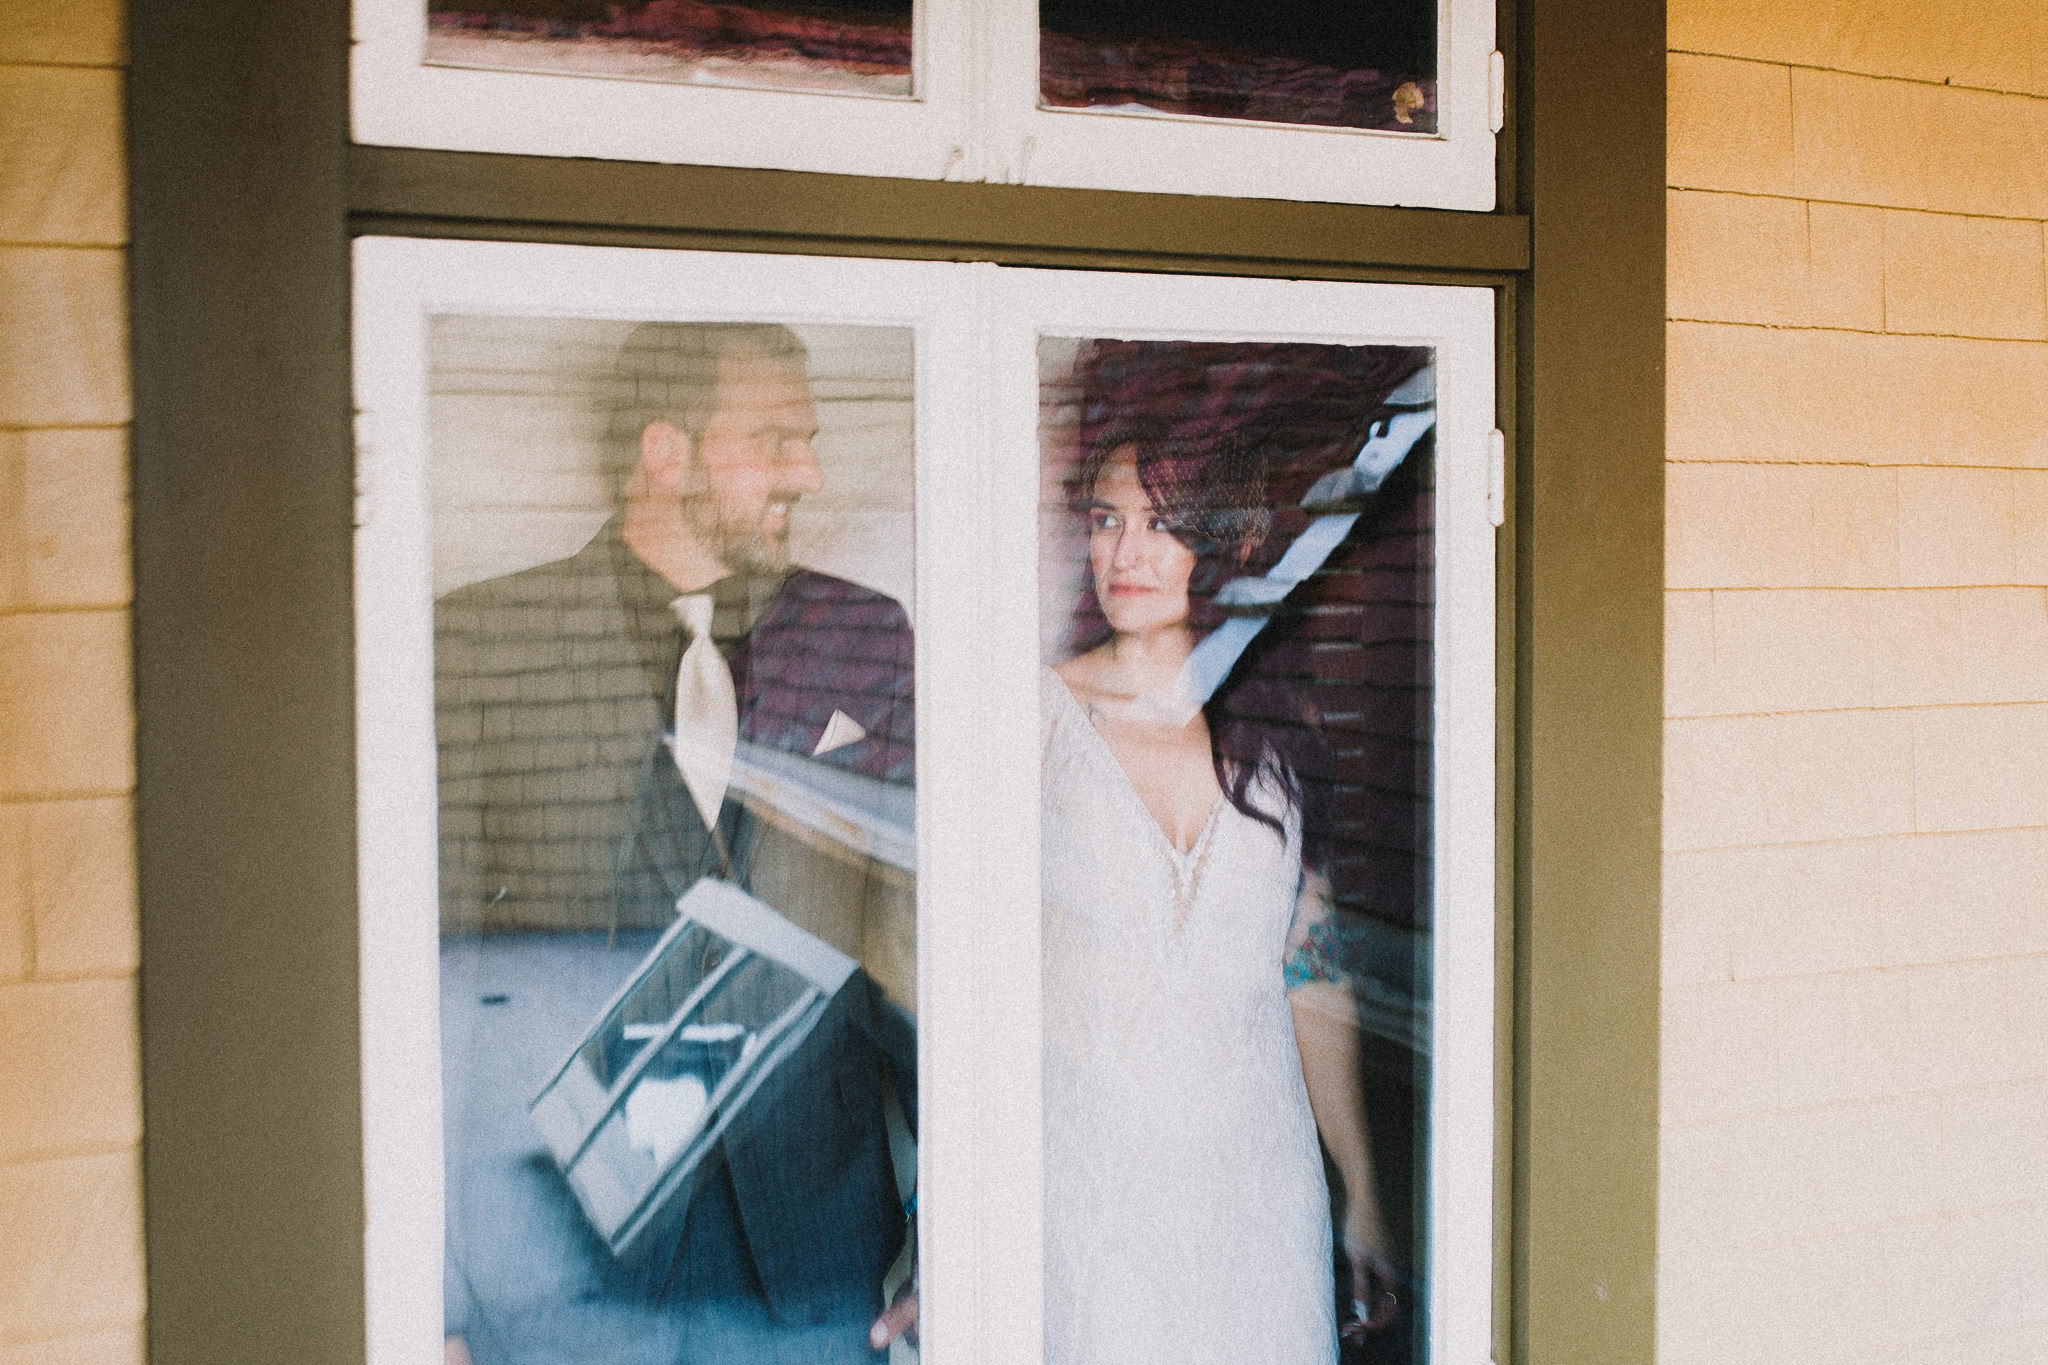 Archer Inspired Photography Sara and Aaron Winchester Mystery House NorCal San Jose California Wedding Photographer-360.jpg